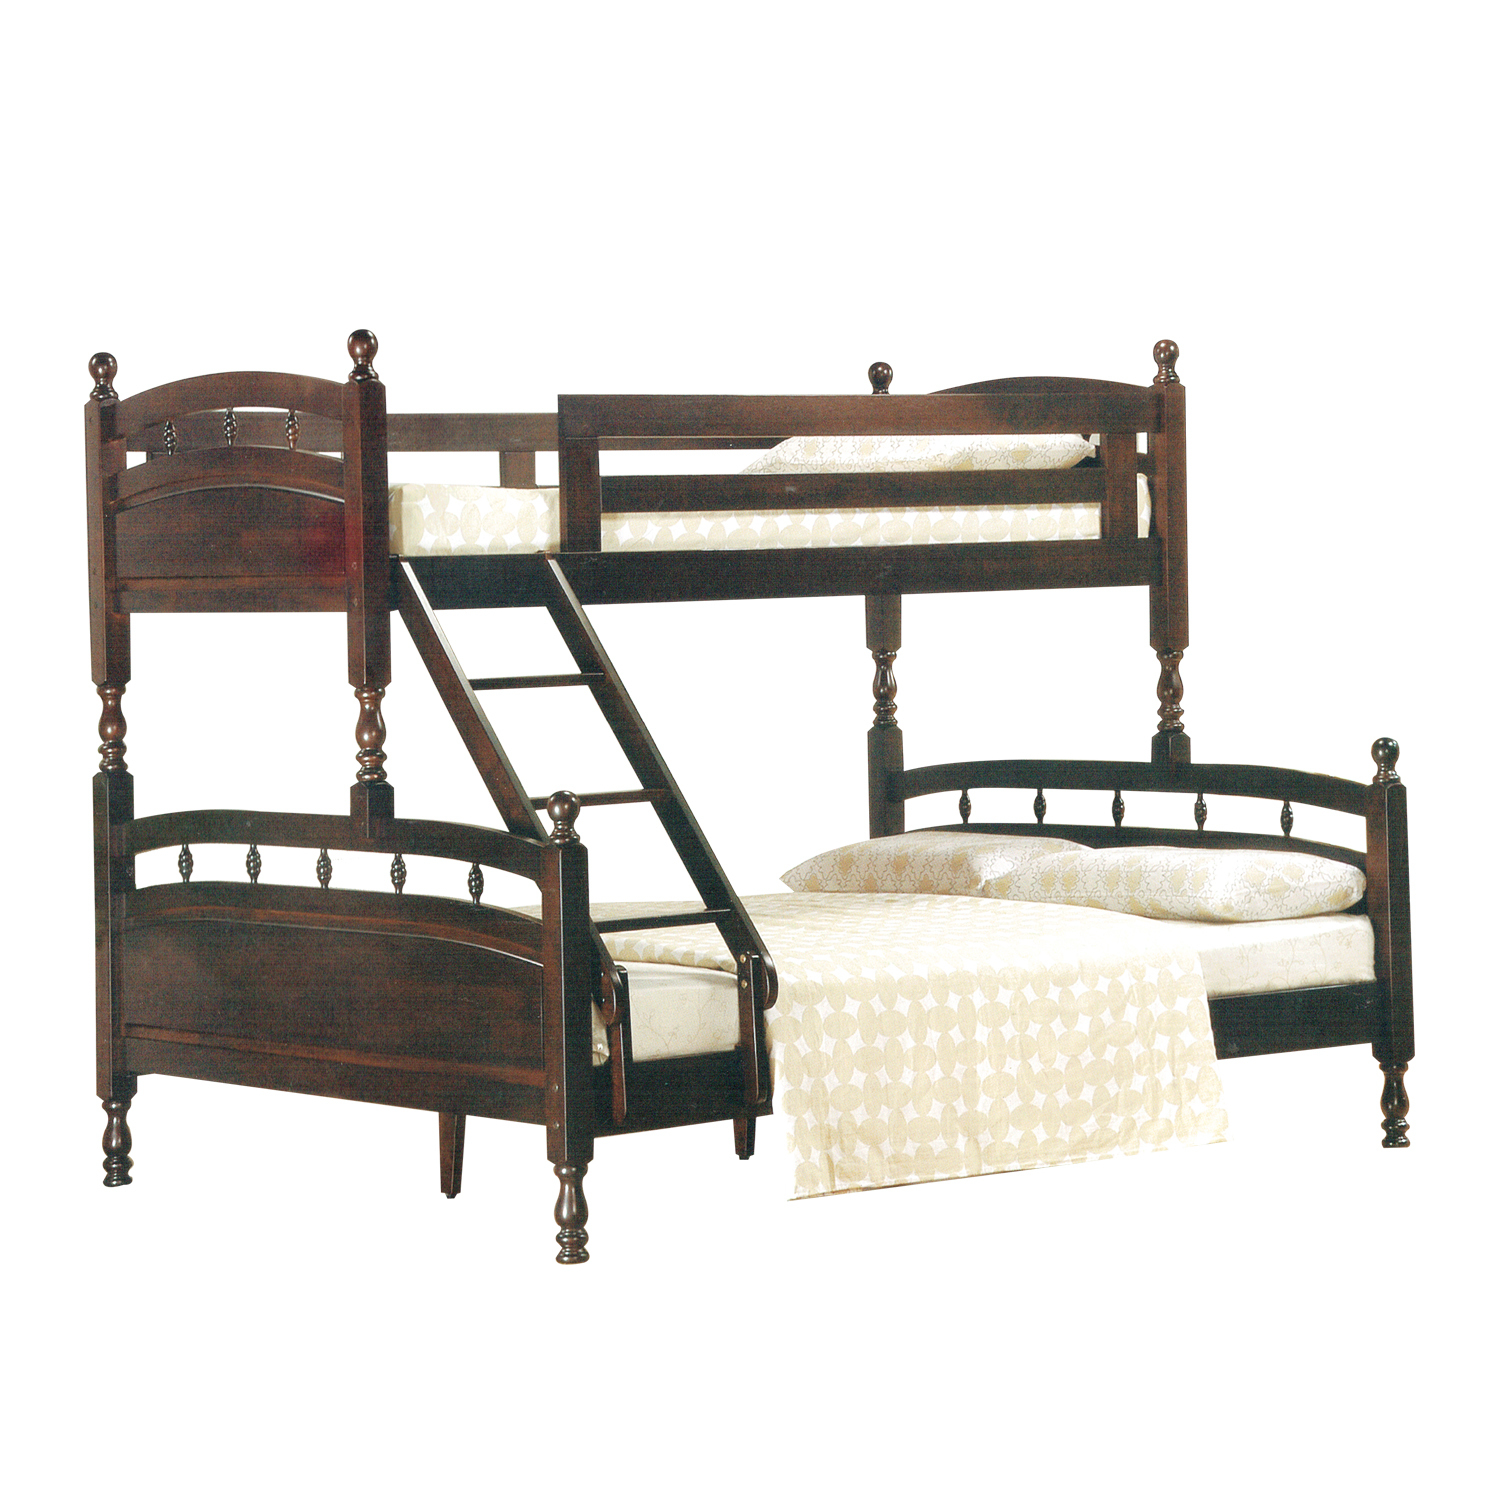 bunk bed 108 BB walnut.jpg